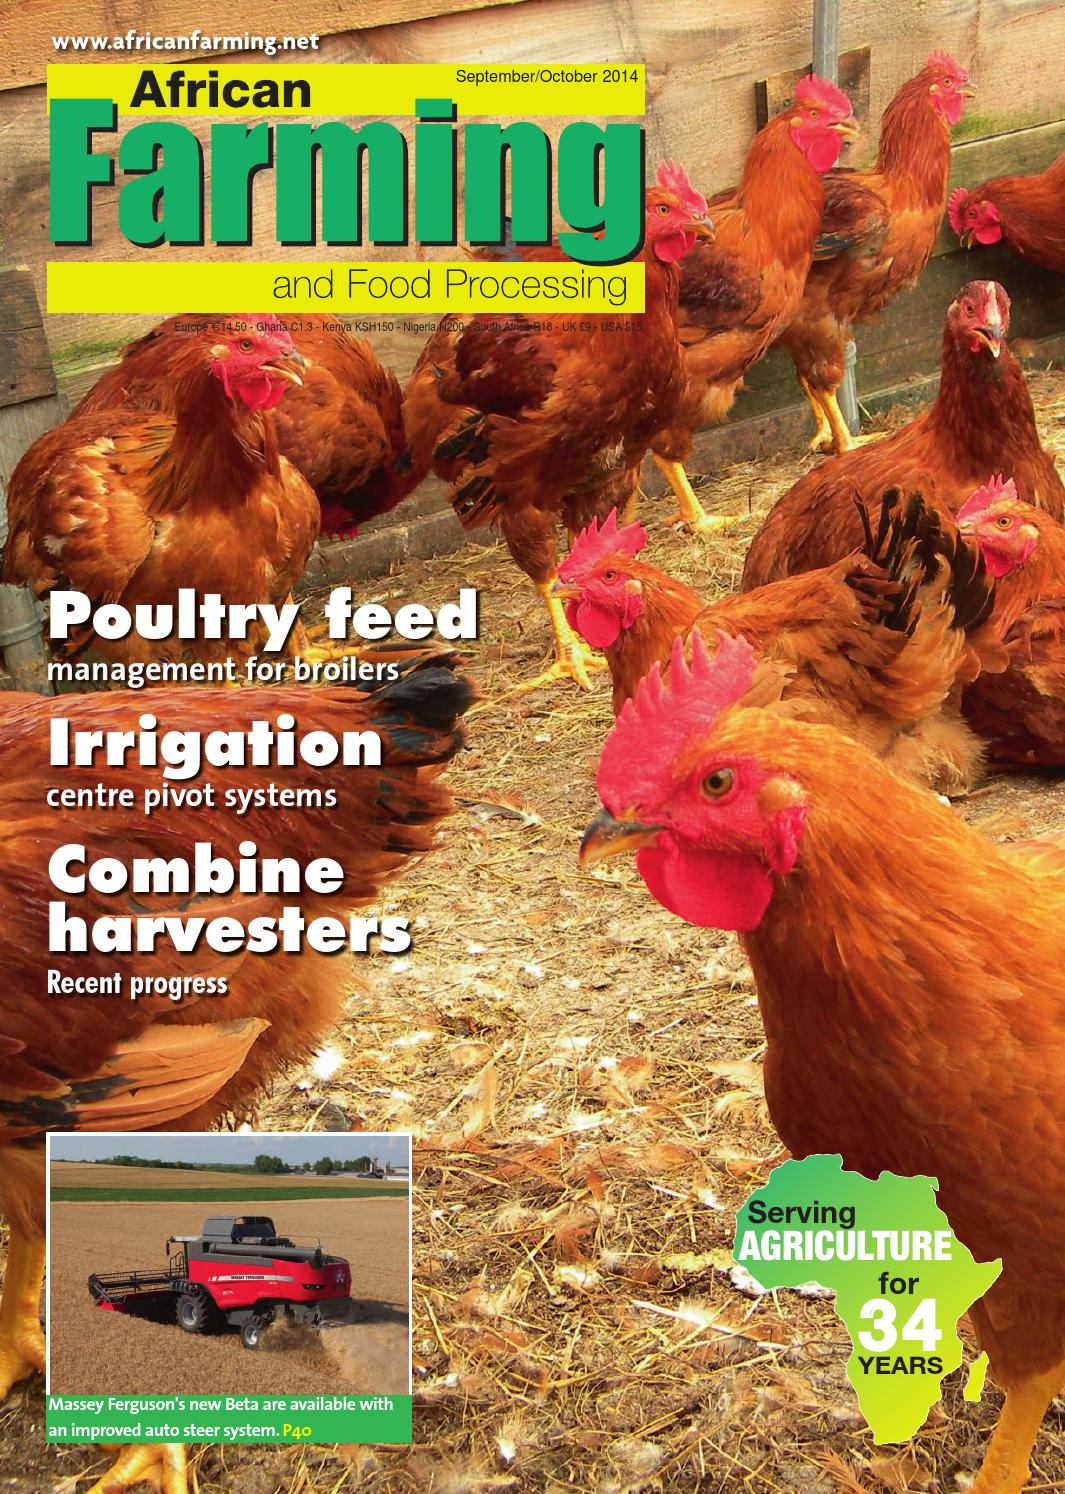 Weber Rooster 57 Cm African Farming Sept Oct 2014 By Alain Charles Publishing Issuu